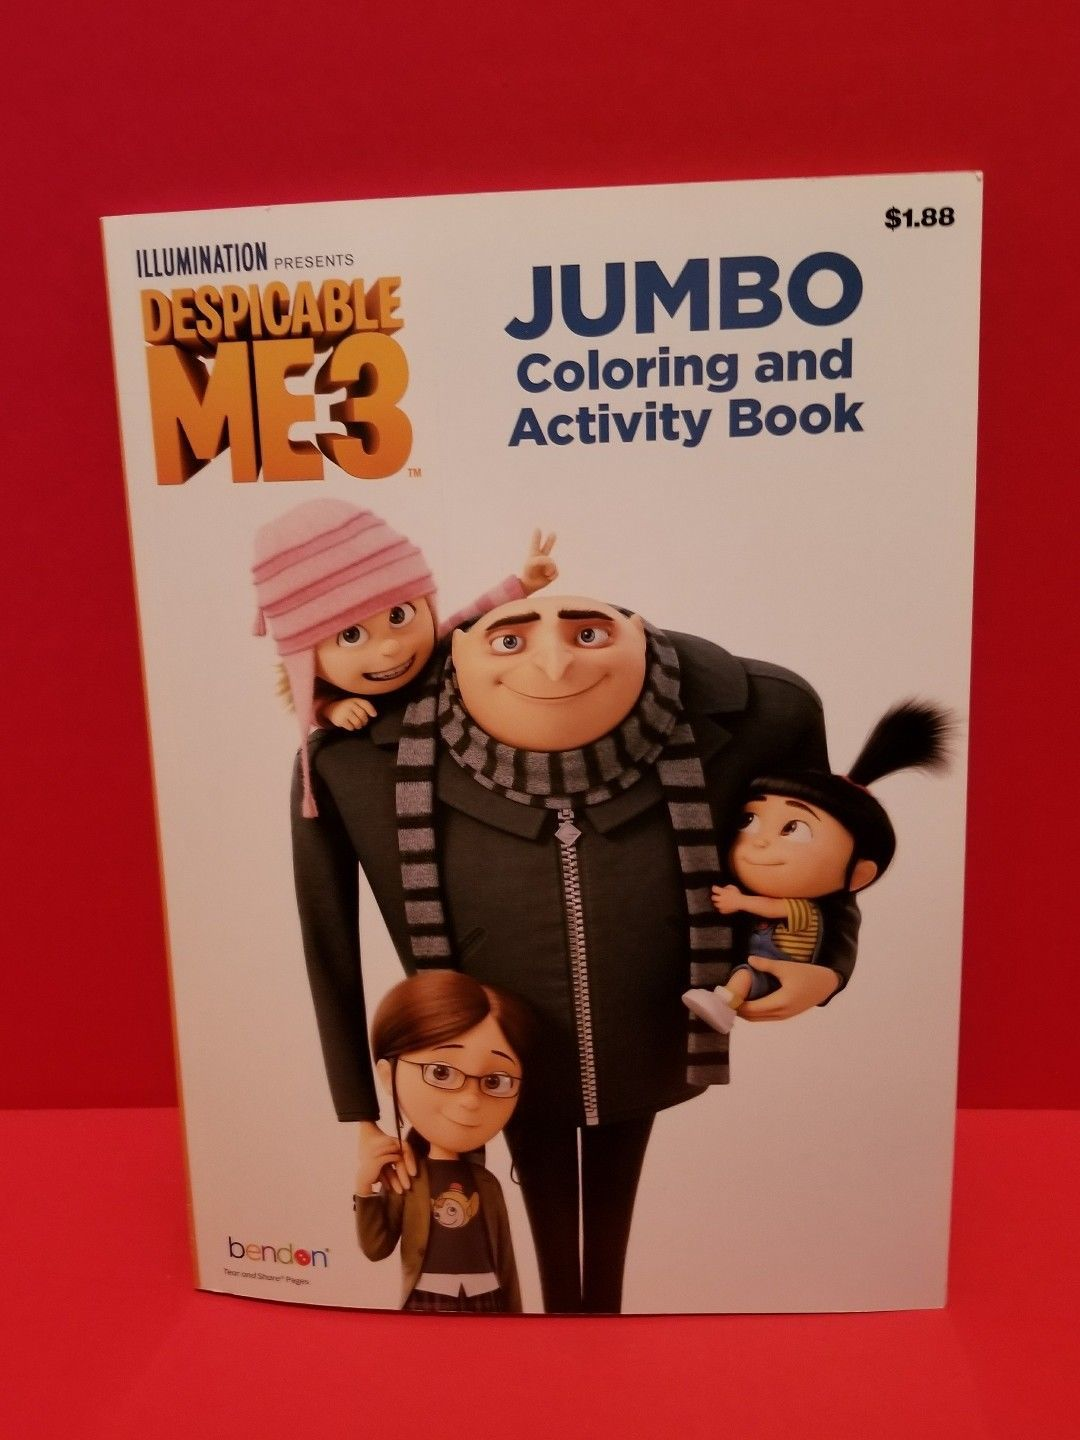 Despicable Me Jumbo Coloring Activity Book And 50 Similar Items